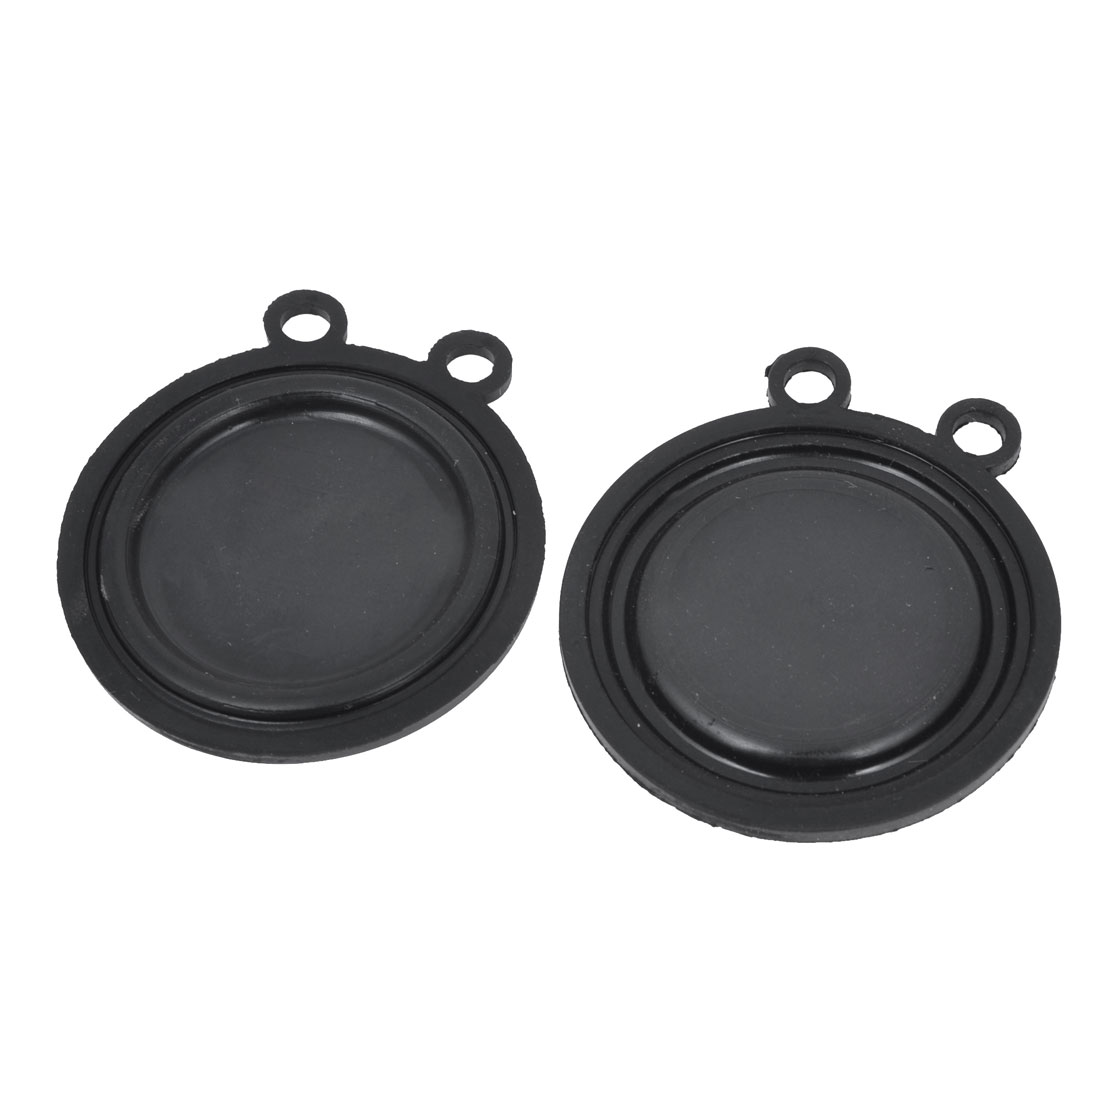 "2.2"" Diameter Flexible Rubber Water Heater Diaphragms Washer Seal 2 Pcs"